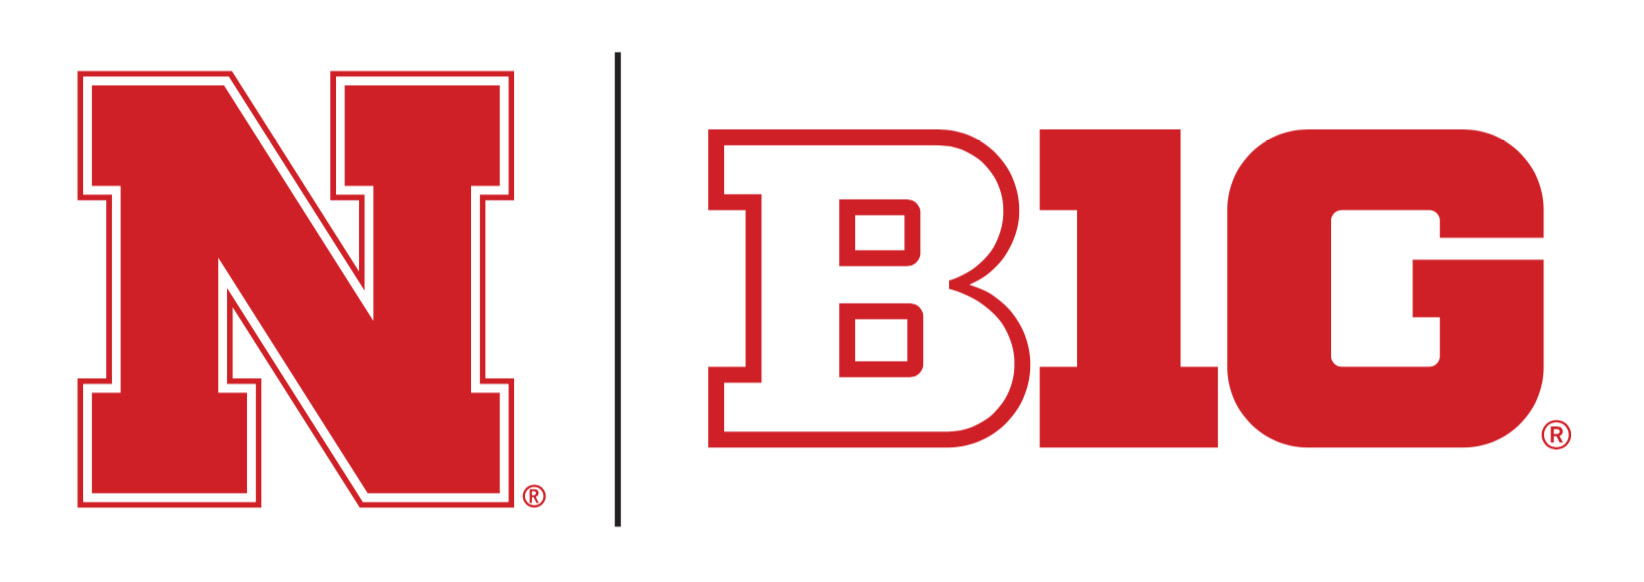 Nebraska logo lockup N left / BIG logo right